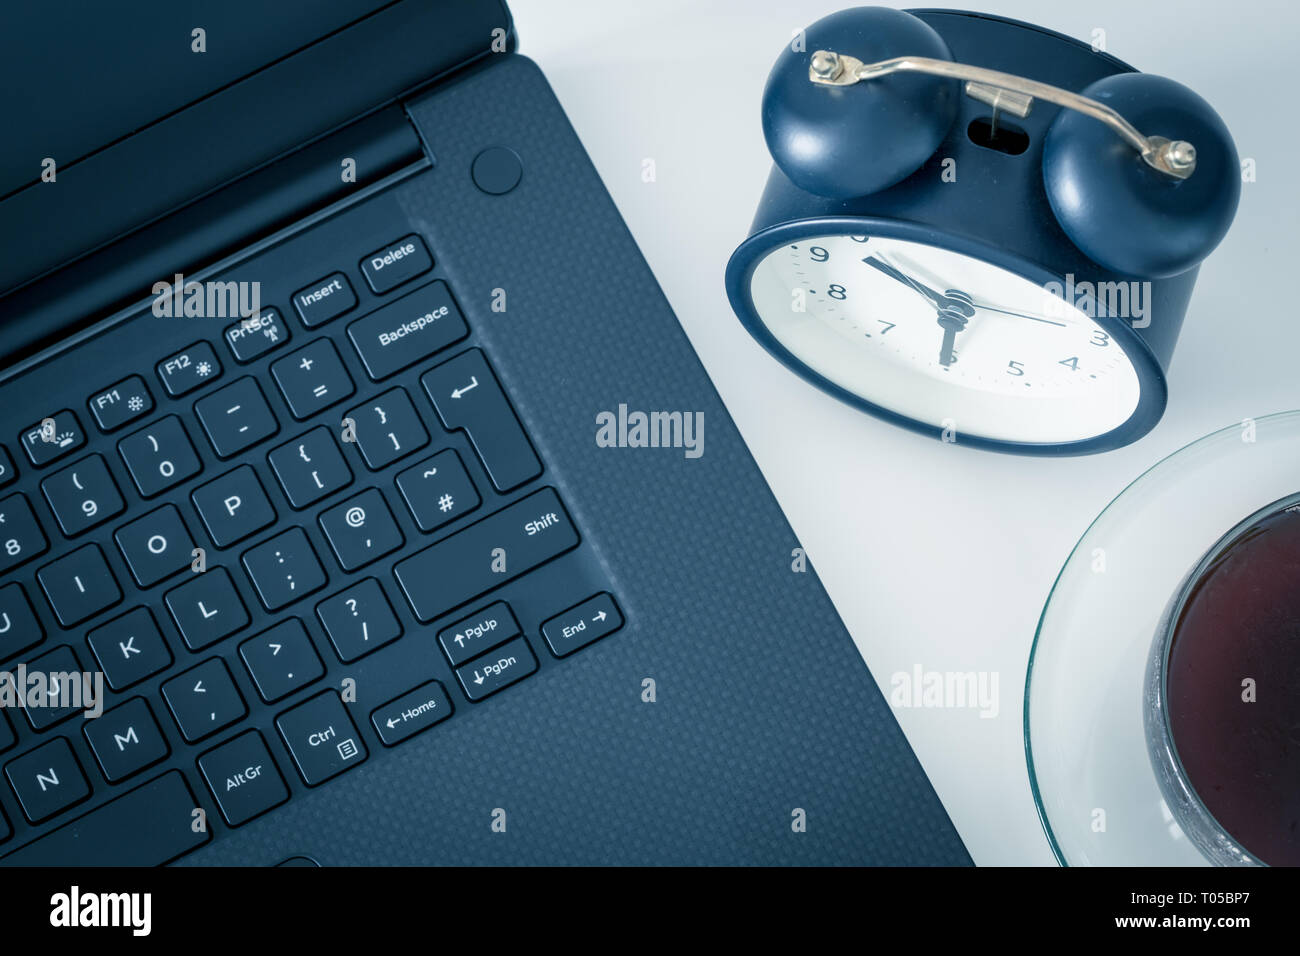 a work desk with a computer and office accessories and an alarm clock measuring the time running away. The concept of urgent deadlines at work - Stock Image